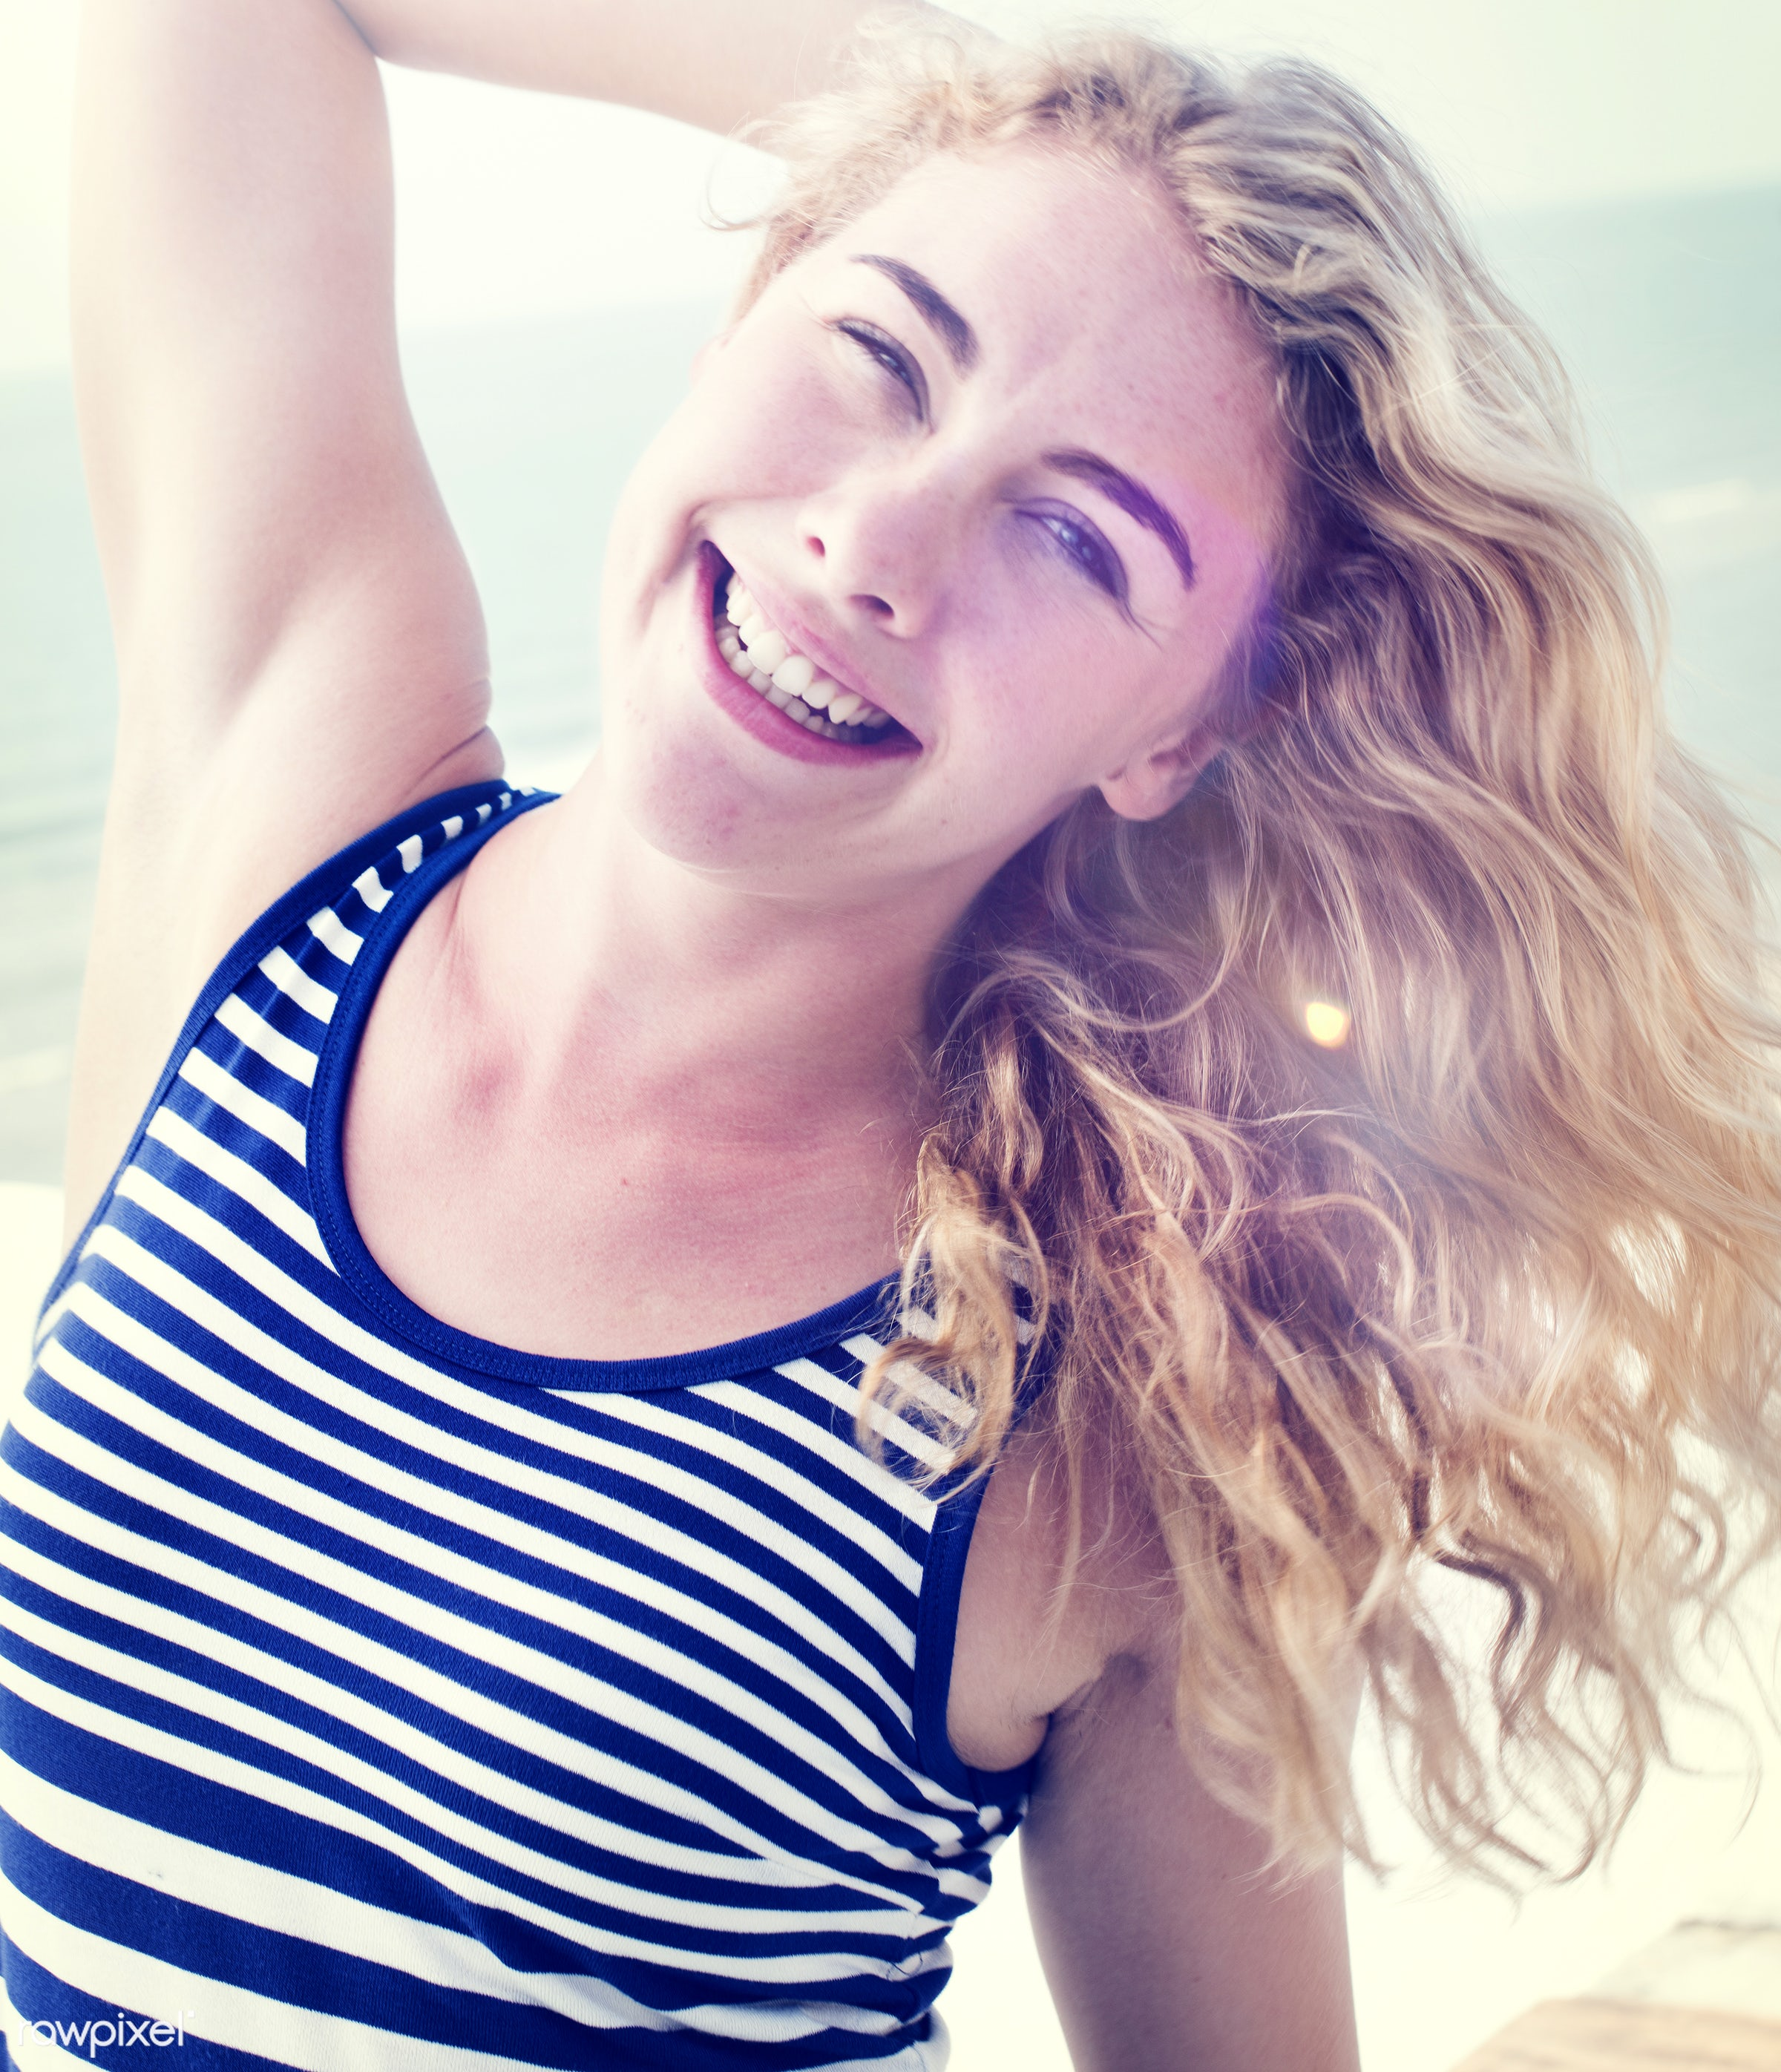 pretty, relax, art, attractive, beach, beautiful, casual, caucasian, cheerful, closeup, color, colorful, cool, enjoying,...